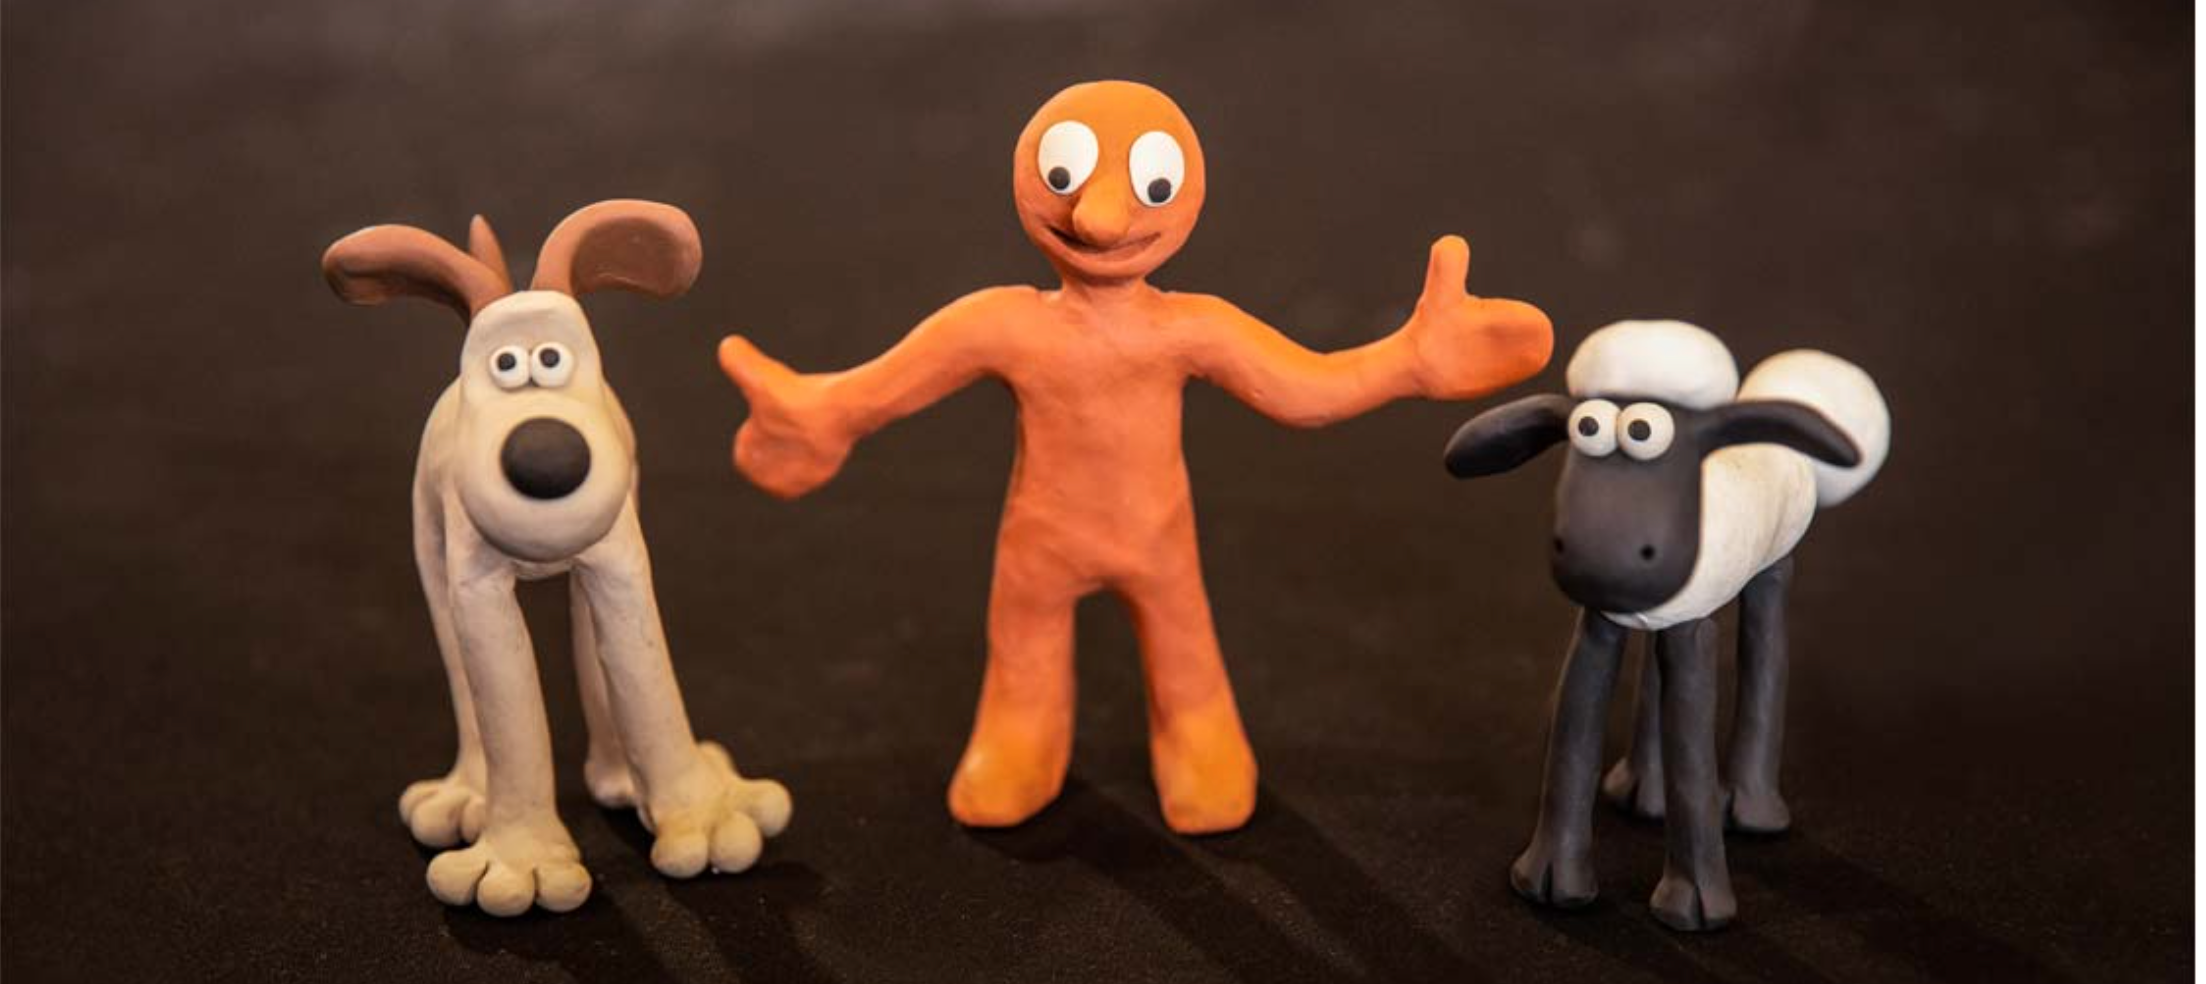 Above: Forming part of Festival of Licensing are three special live model making workshops run by Aardman Animations, to make a Shaun, Morph and Gromit.